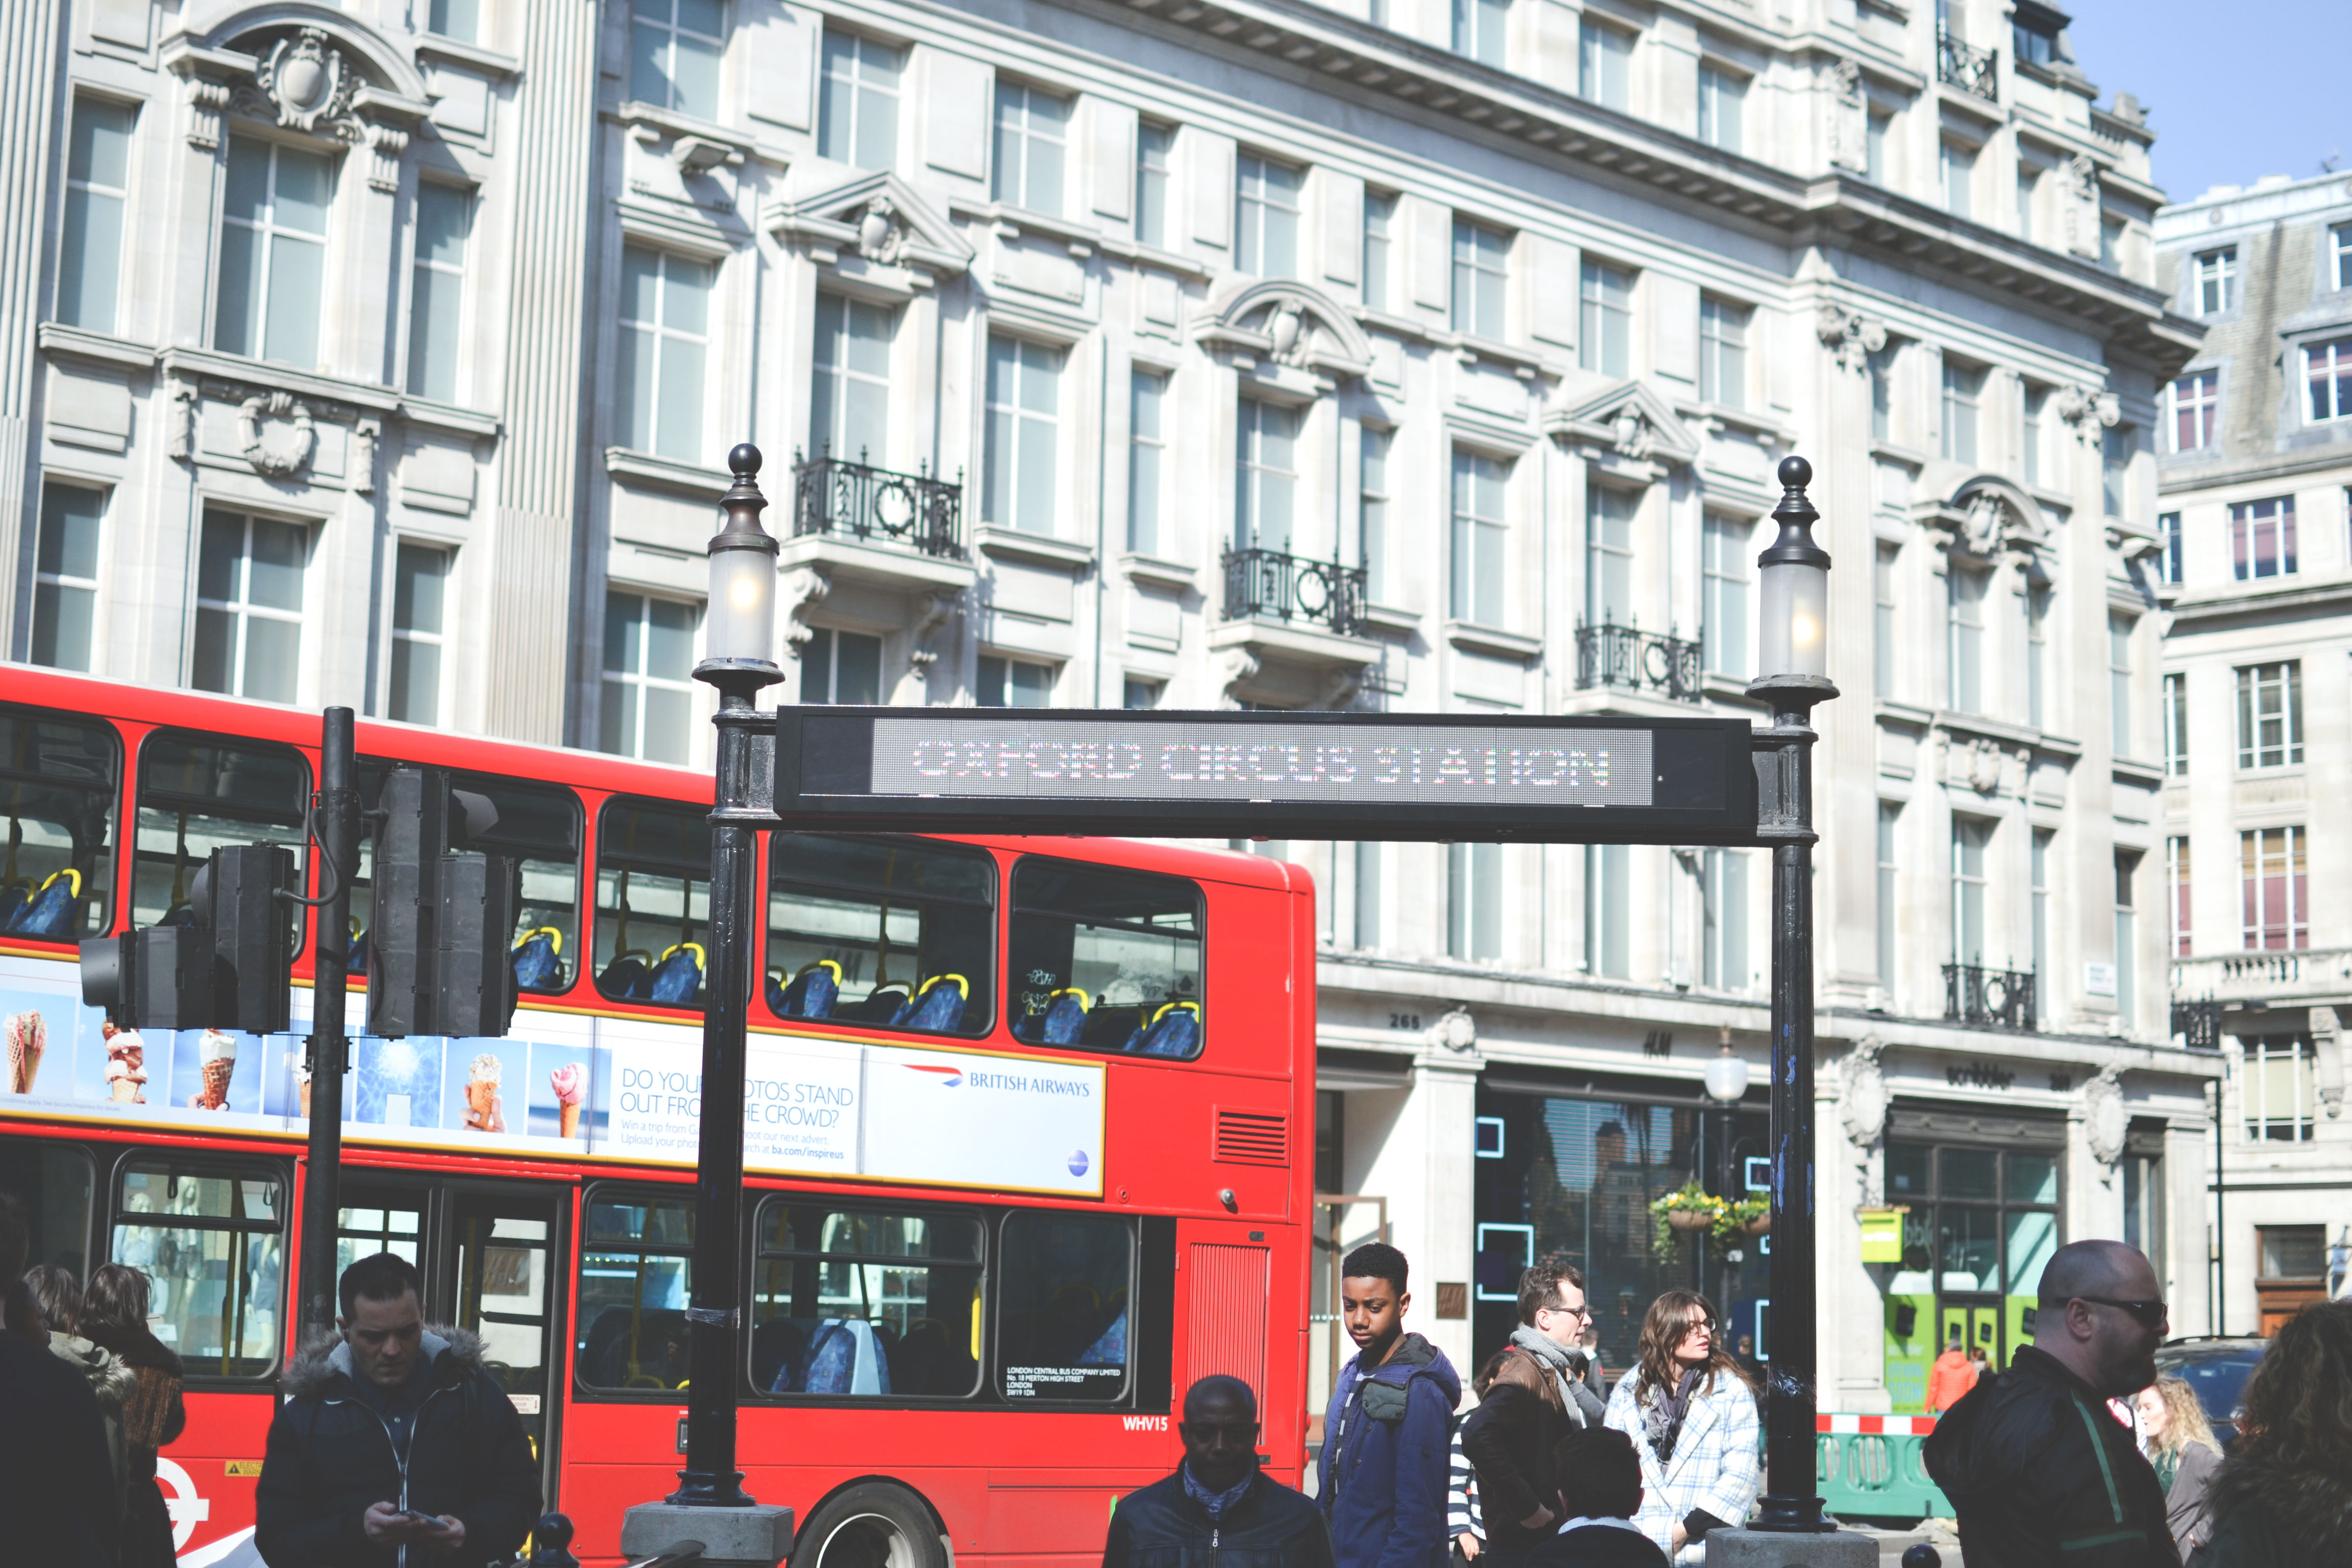 REJSE GUIDE - <strong>LONDON</strong> 33